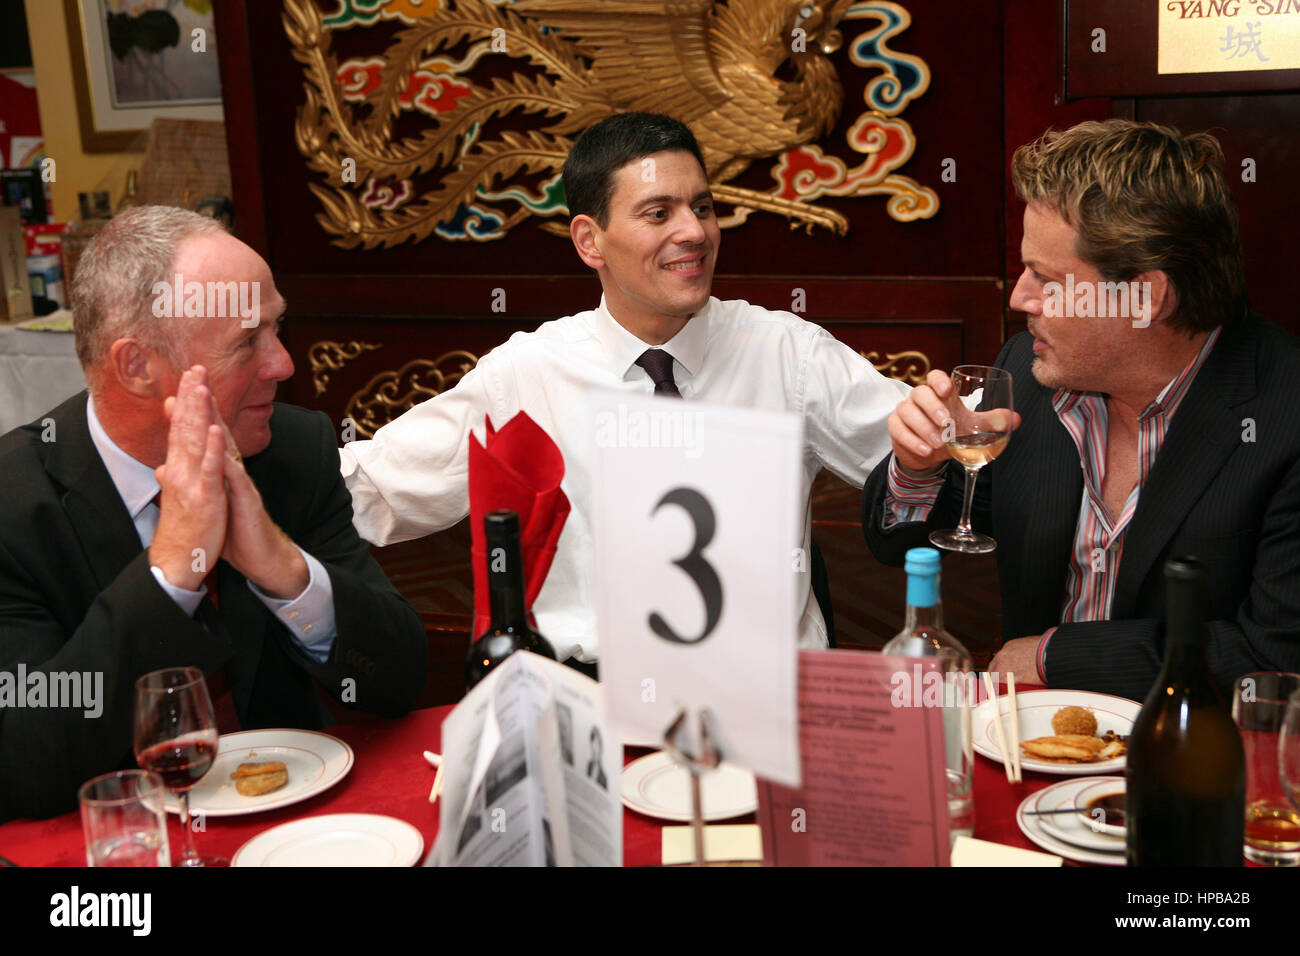 Labour Party Conference. Yang Sing restaurant. L-R Richard Leese, David Milliband and Eddie Izzard. - Stock Image